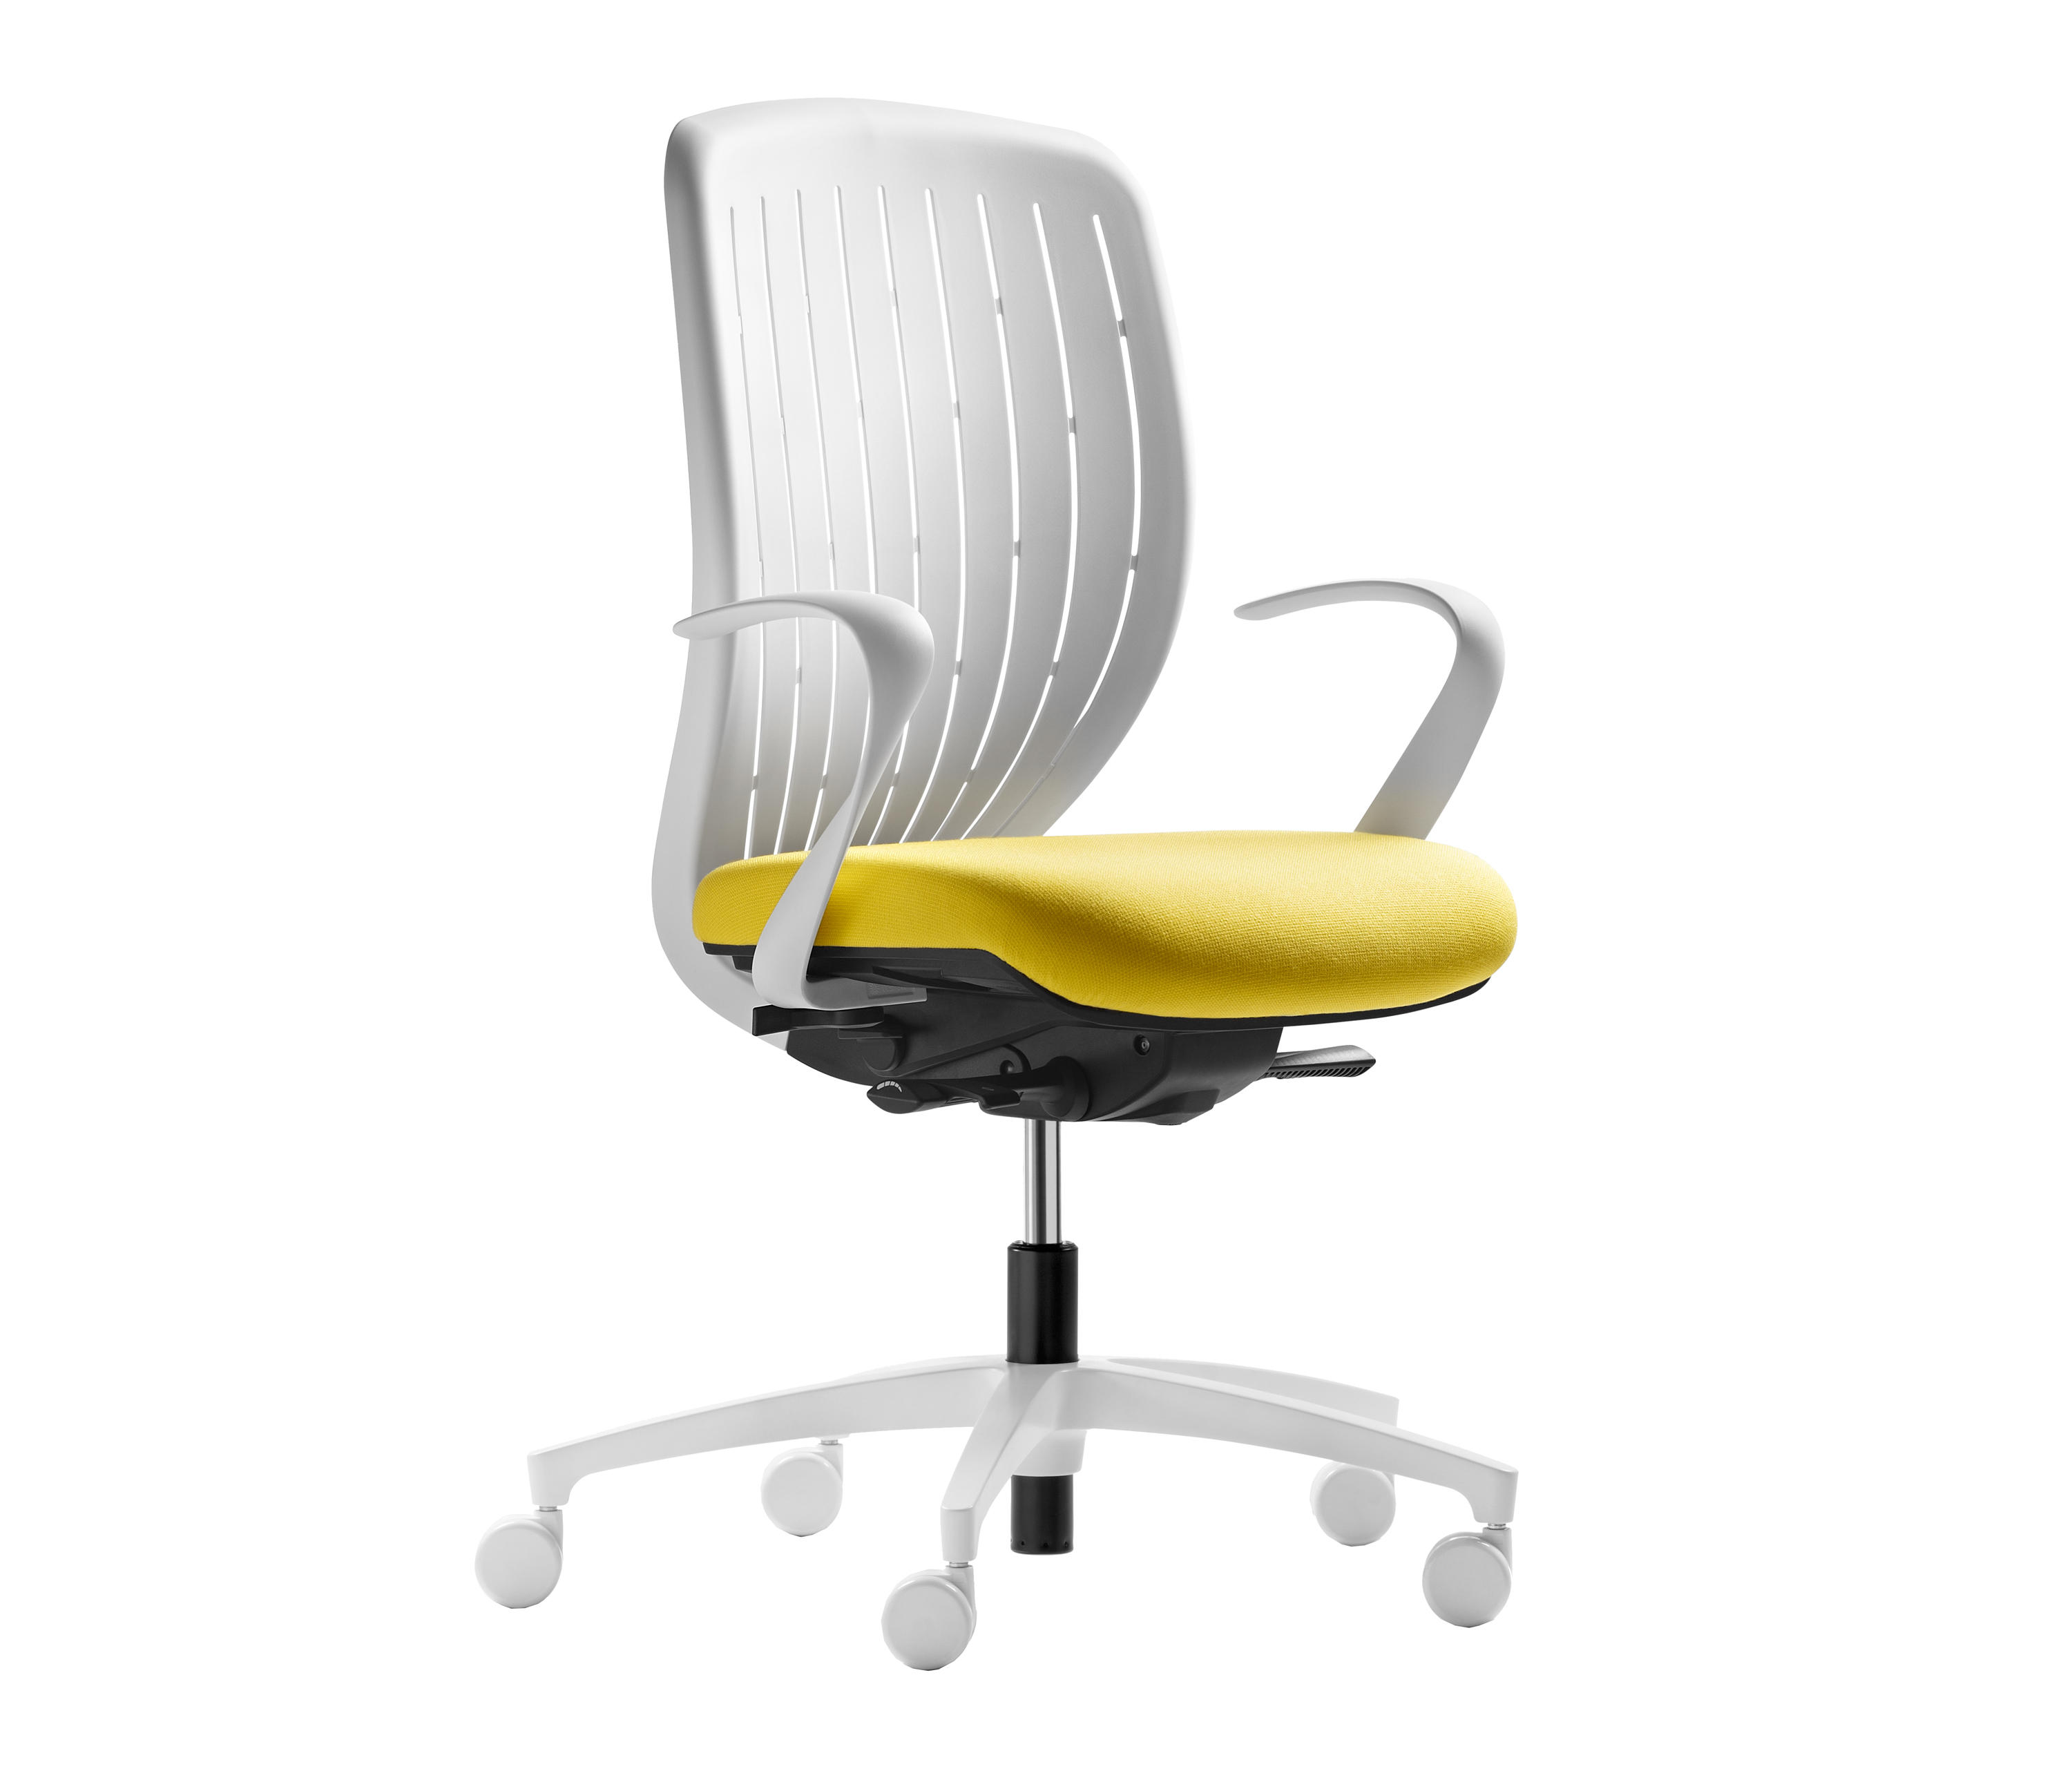 Dauphin Chairs Kick Off Membrane Office Chairs From Dauphin Architonic